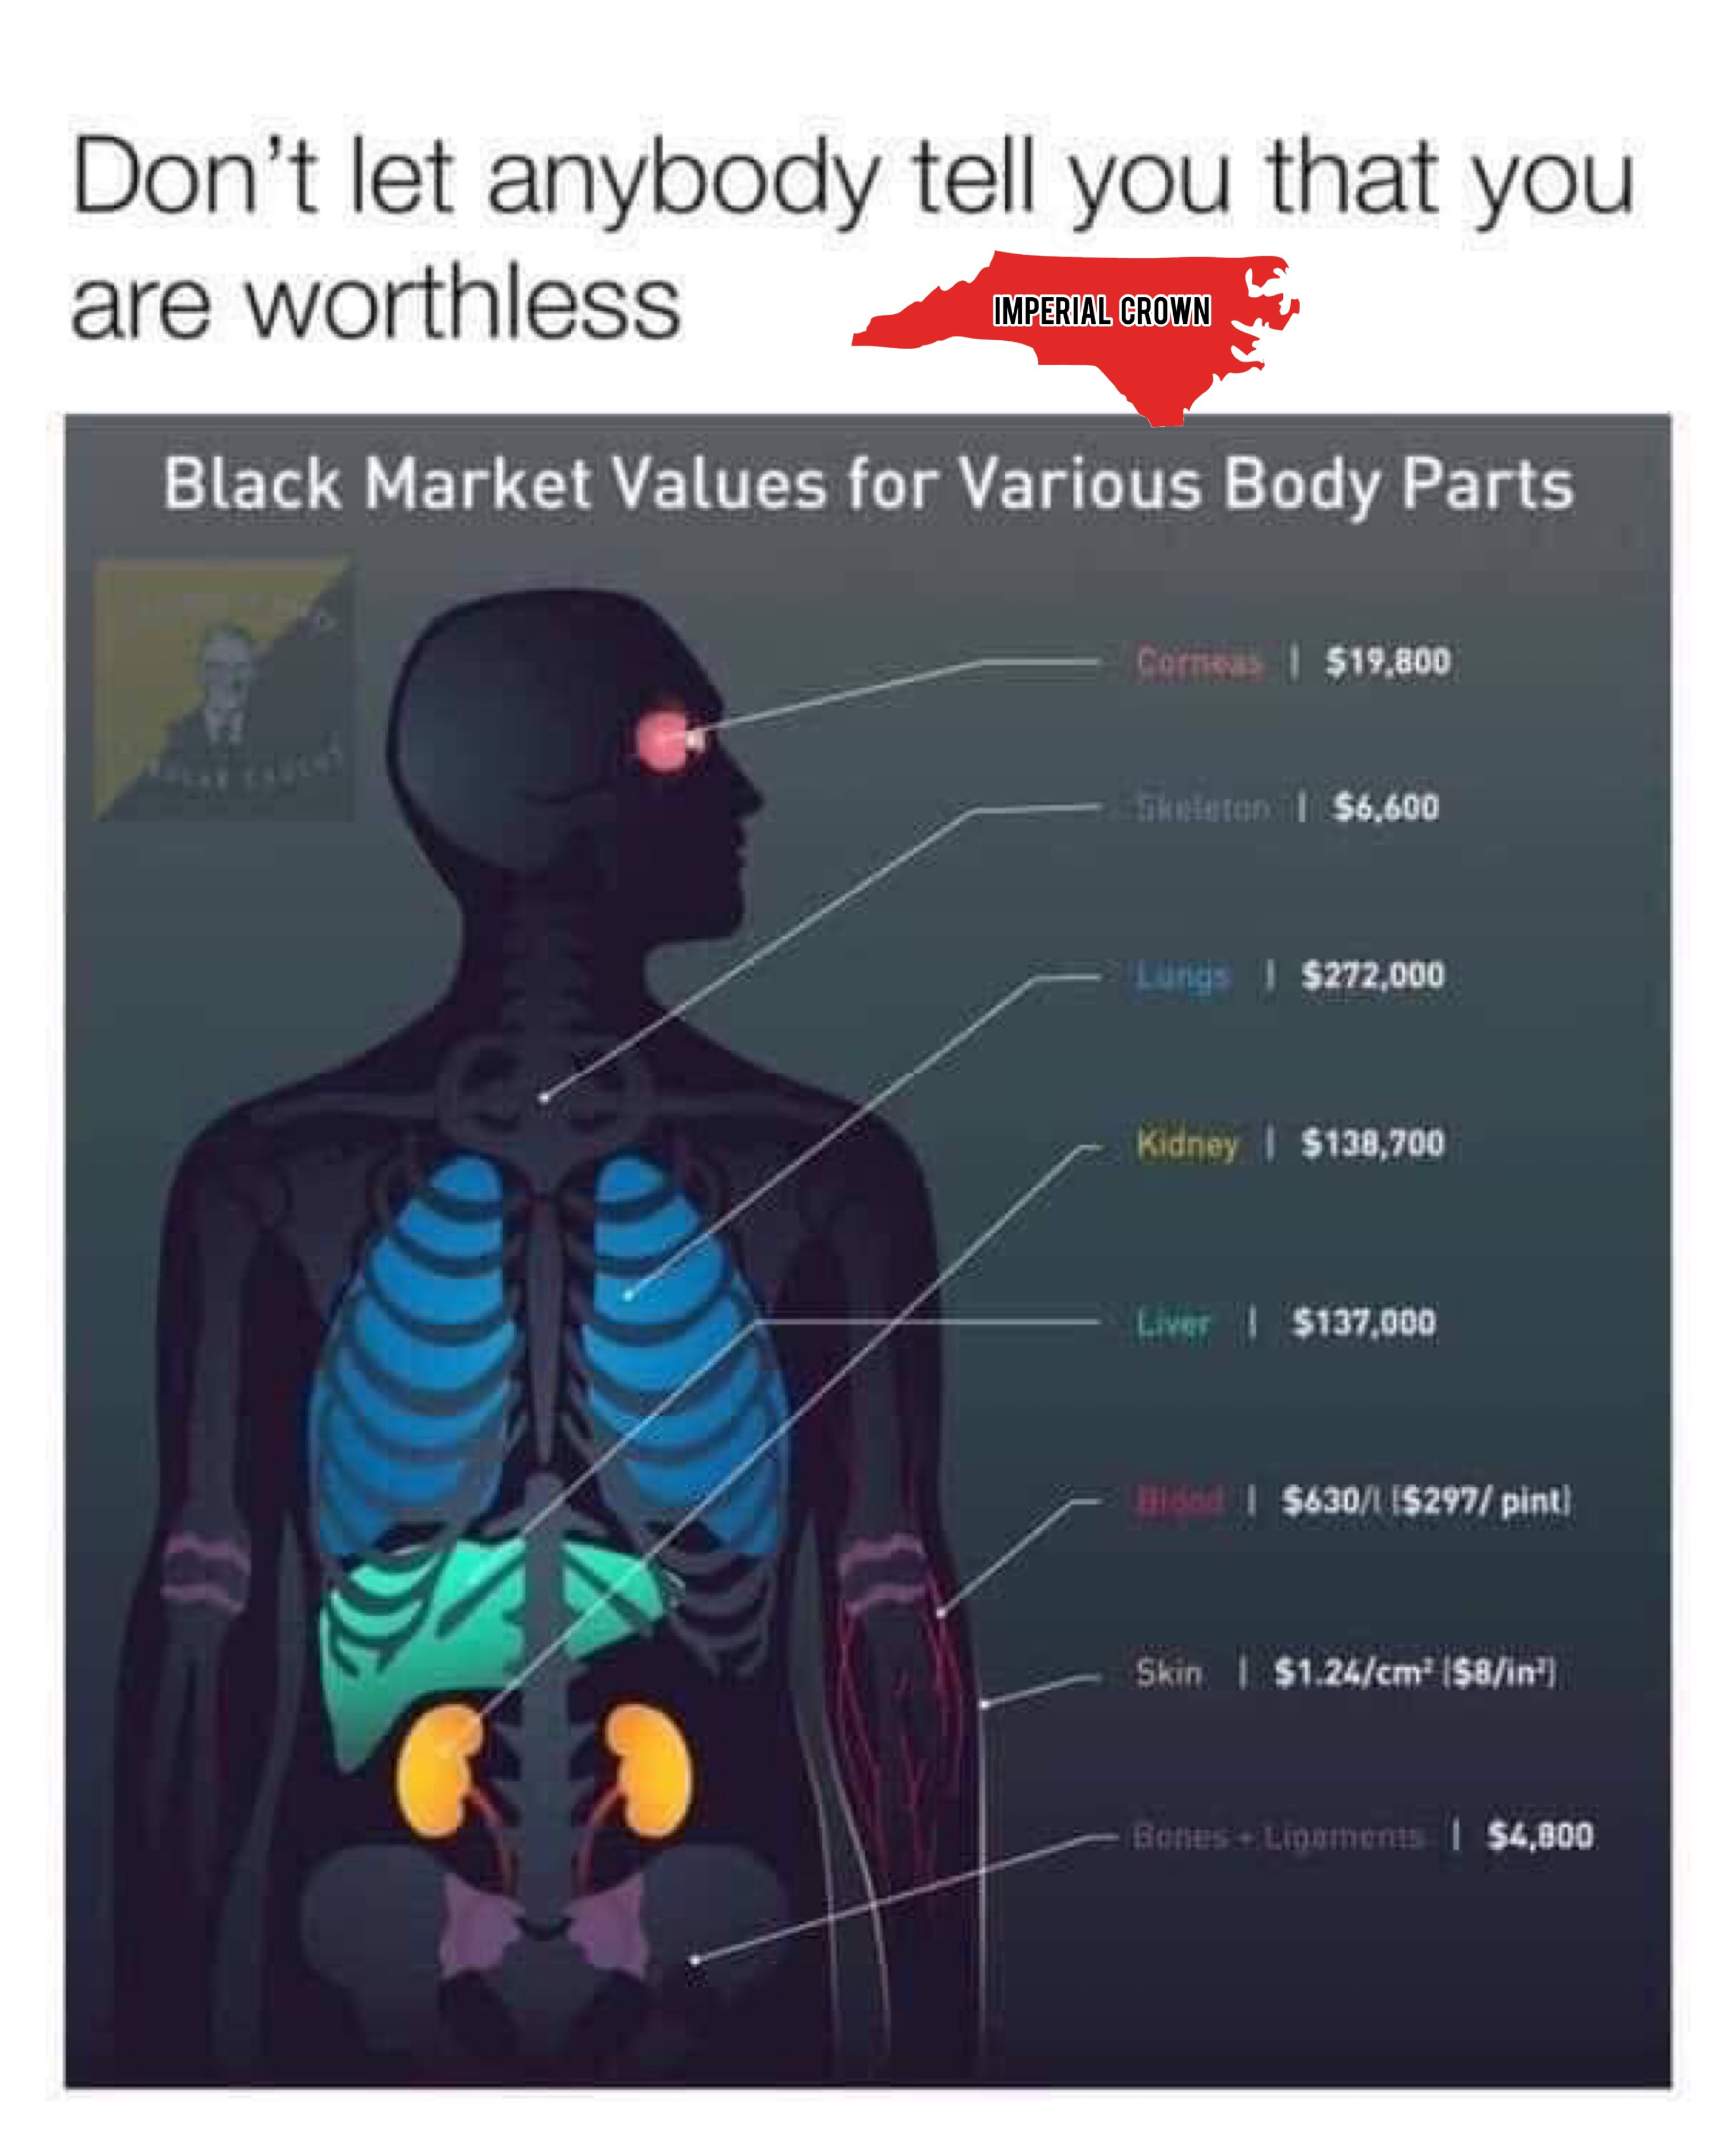 Don't let anyone tell you that you are worthless……